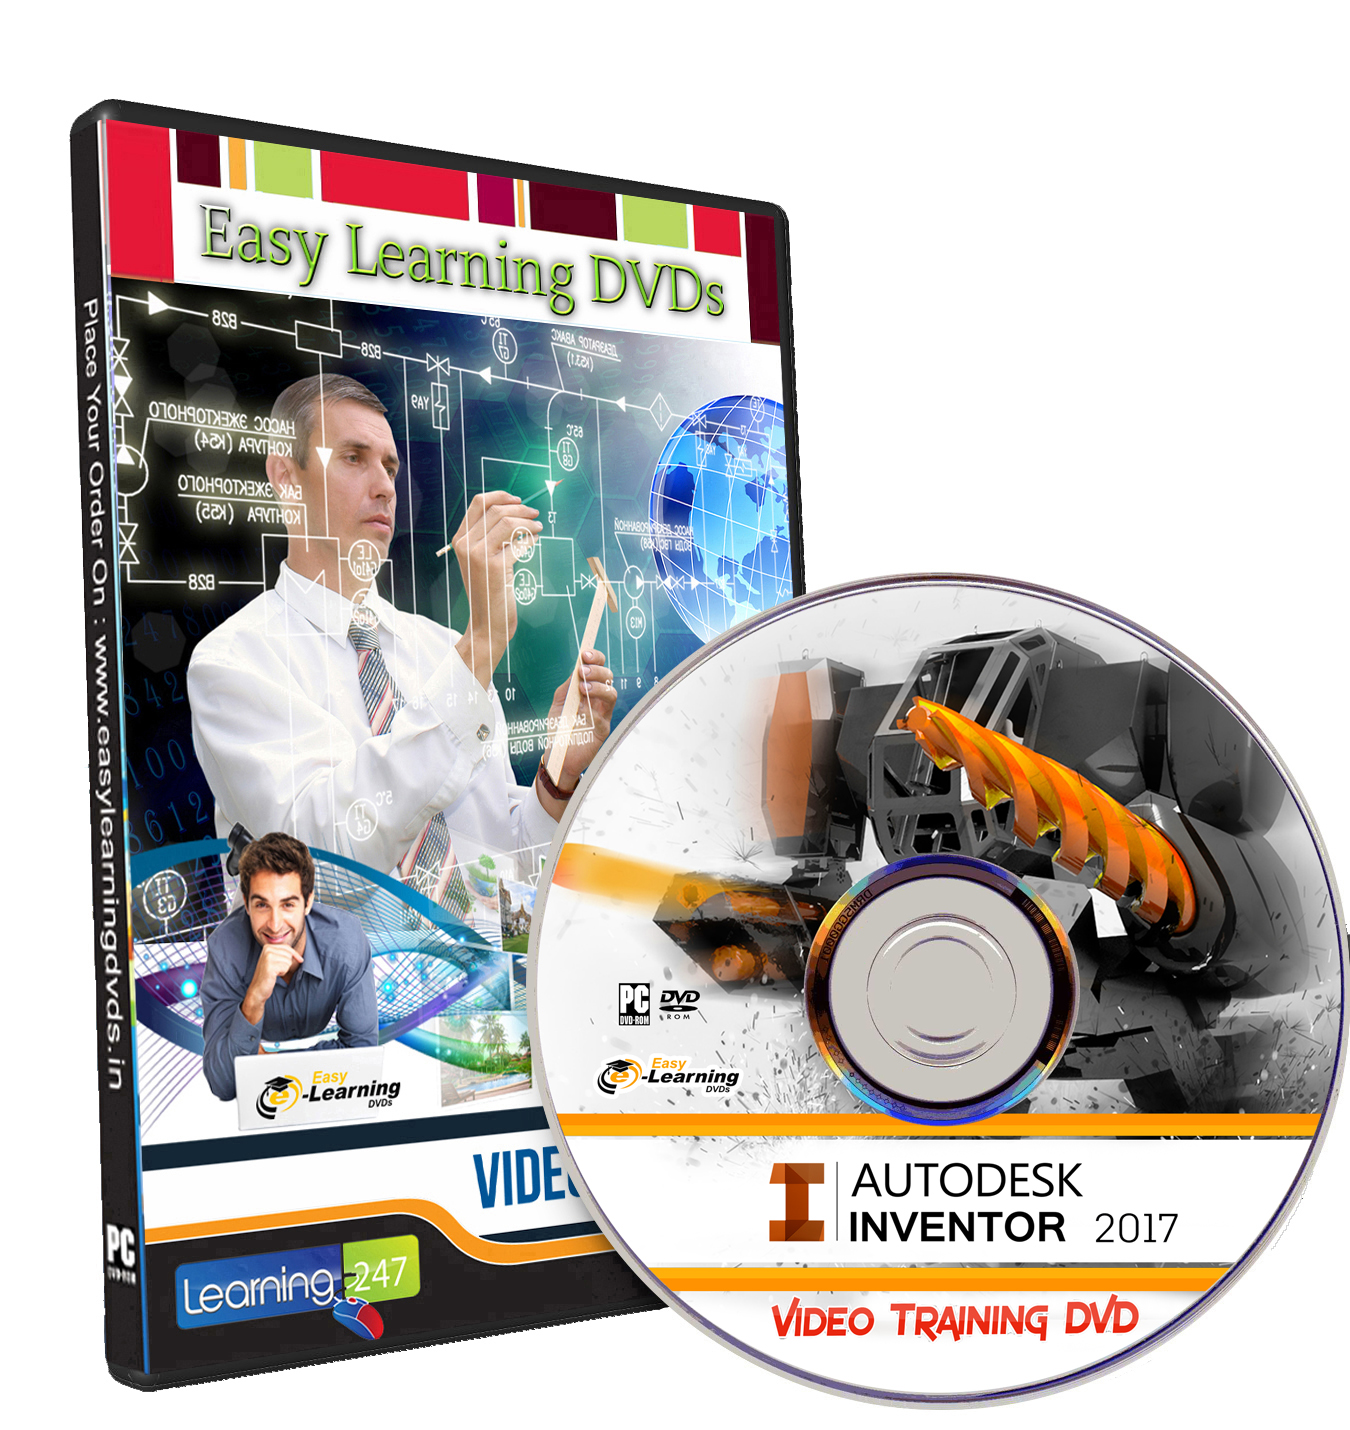 Learning autodesk inventor 2017 training dvd download : apaber